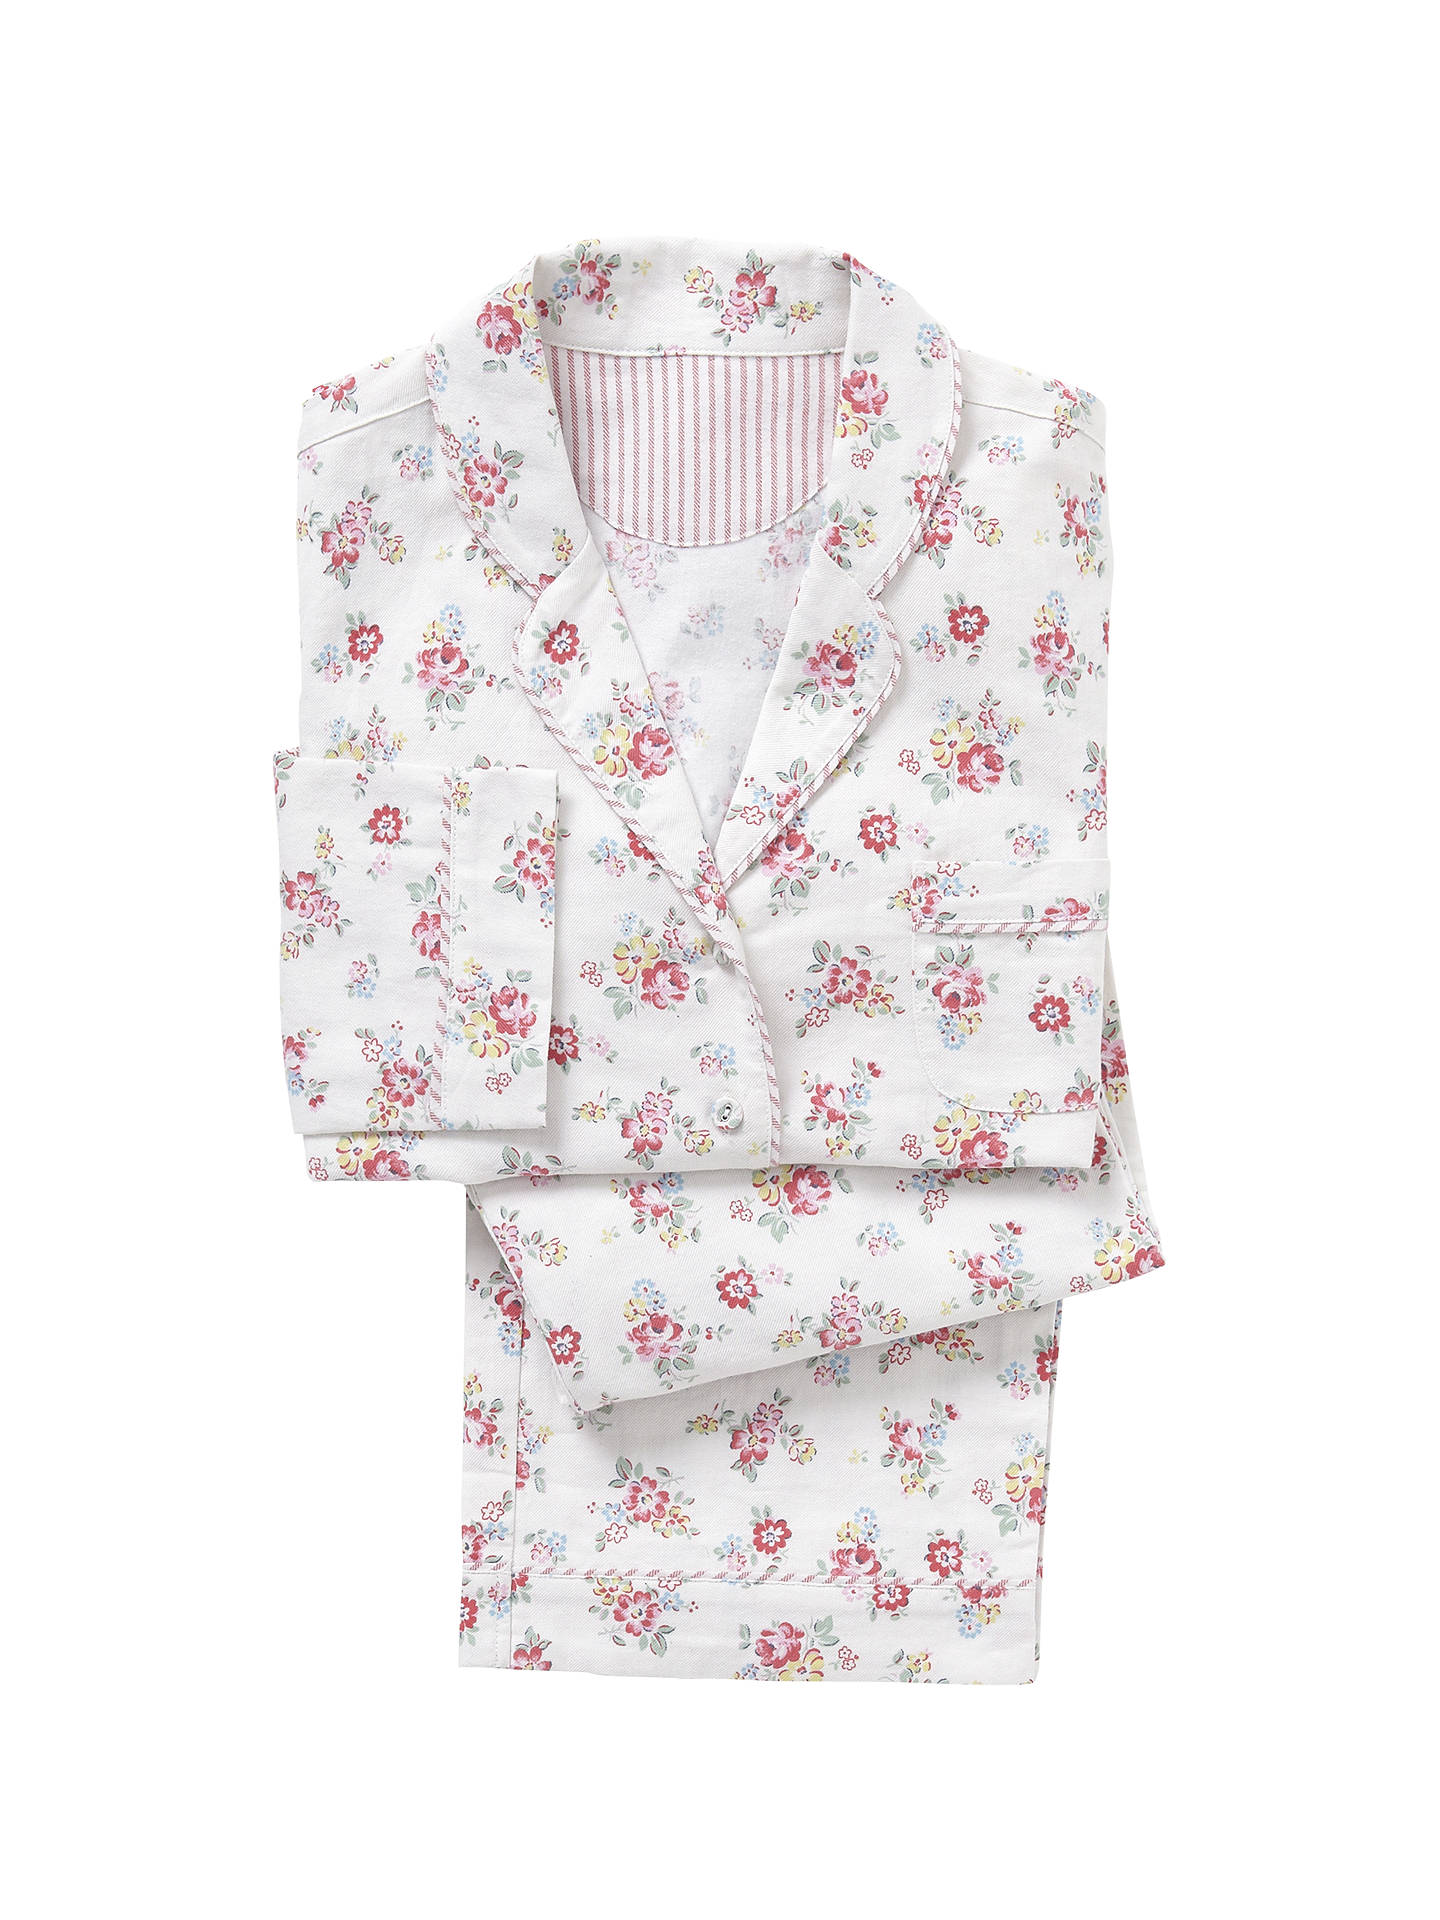 on sale top-rated professional strong packing Cath Kidston Camberwell Pyjama Set, Multi at John Lewis ...